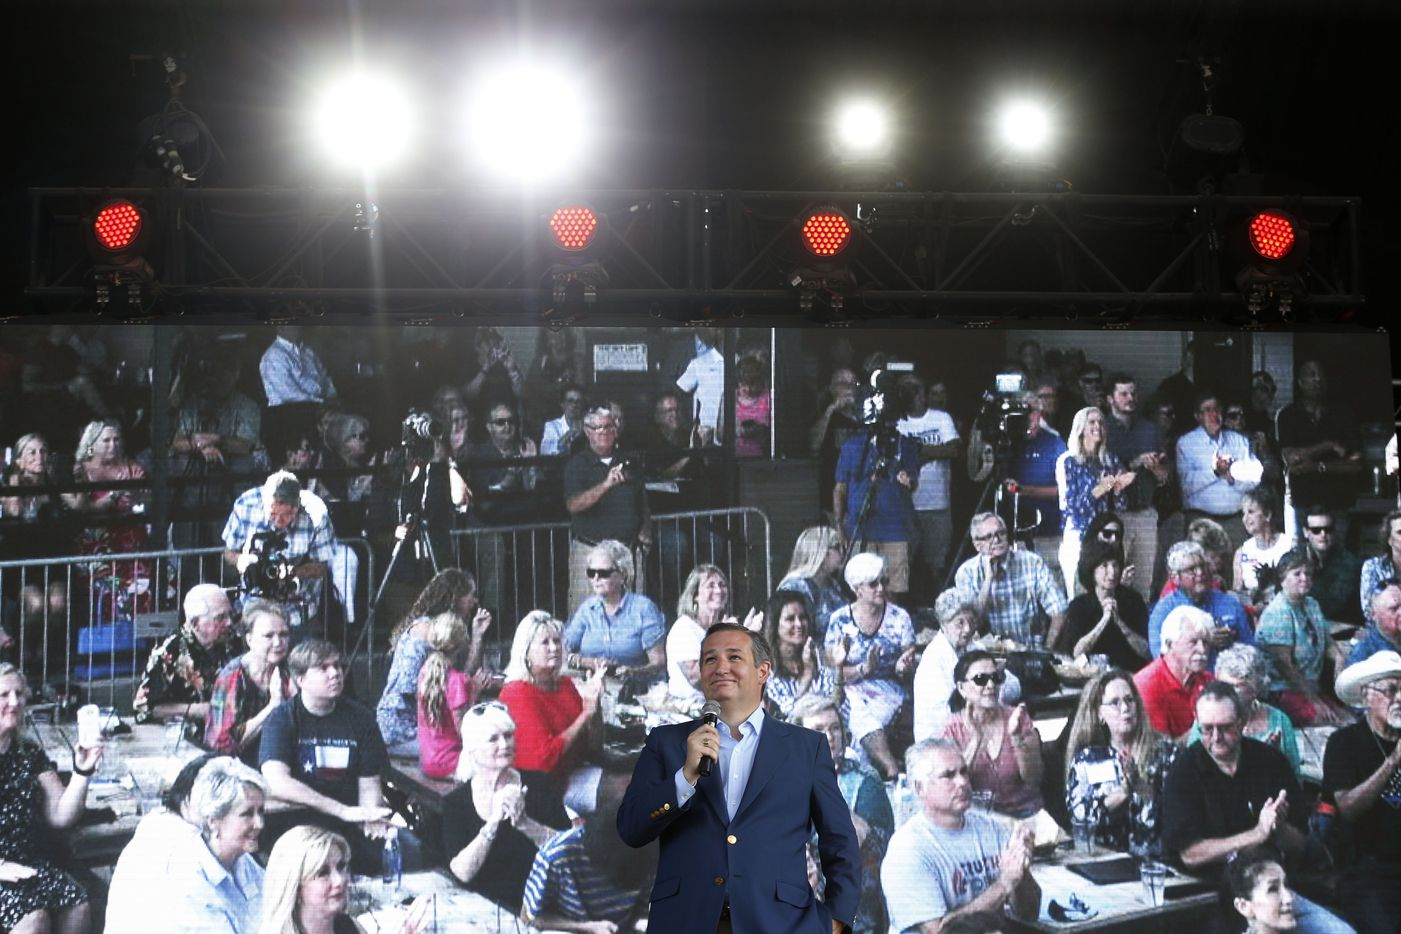 Senator Ted Cruz gives an election speech at Lava Cantina in The Colony, Texas on Aug. 27, 2018.